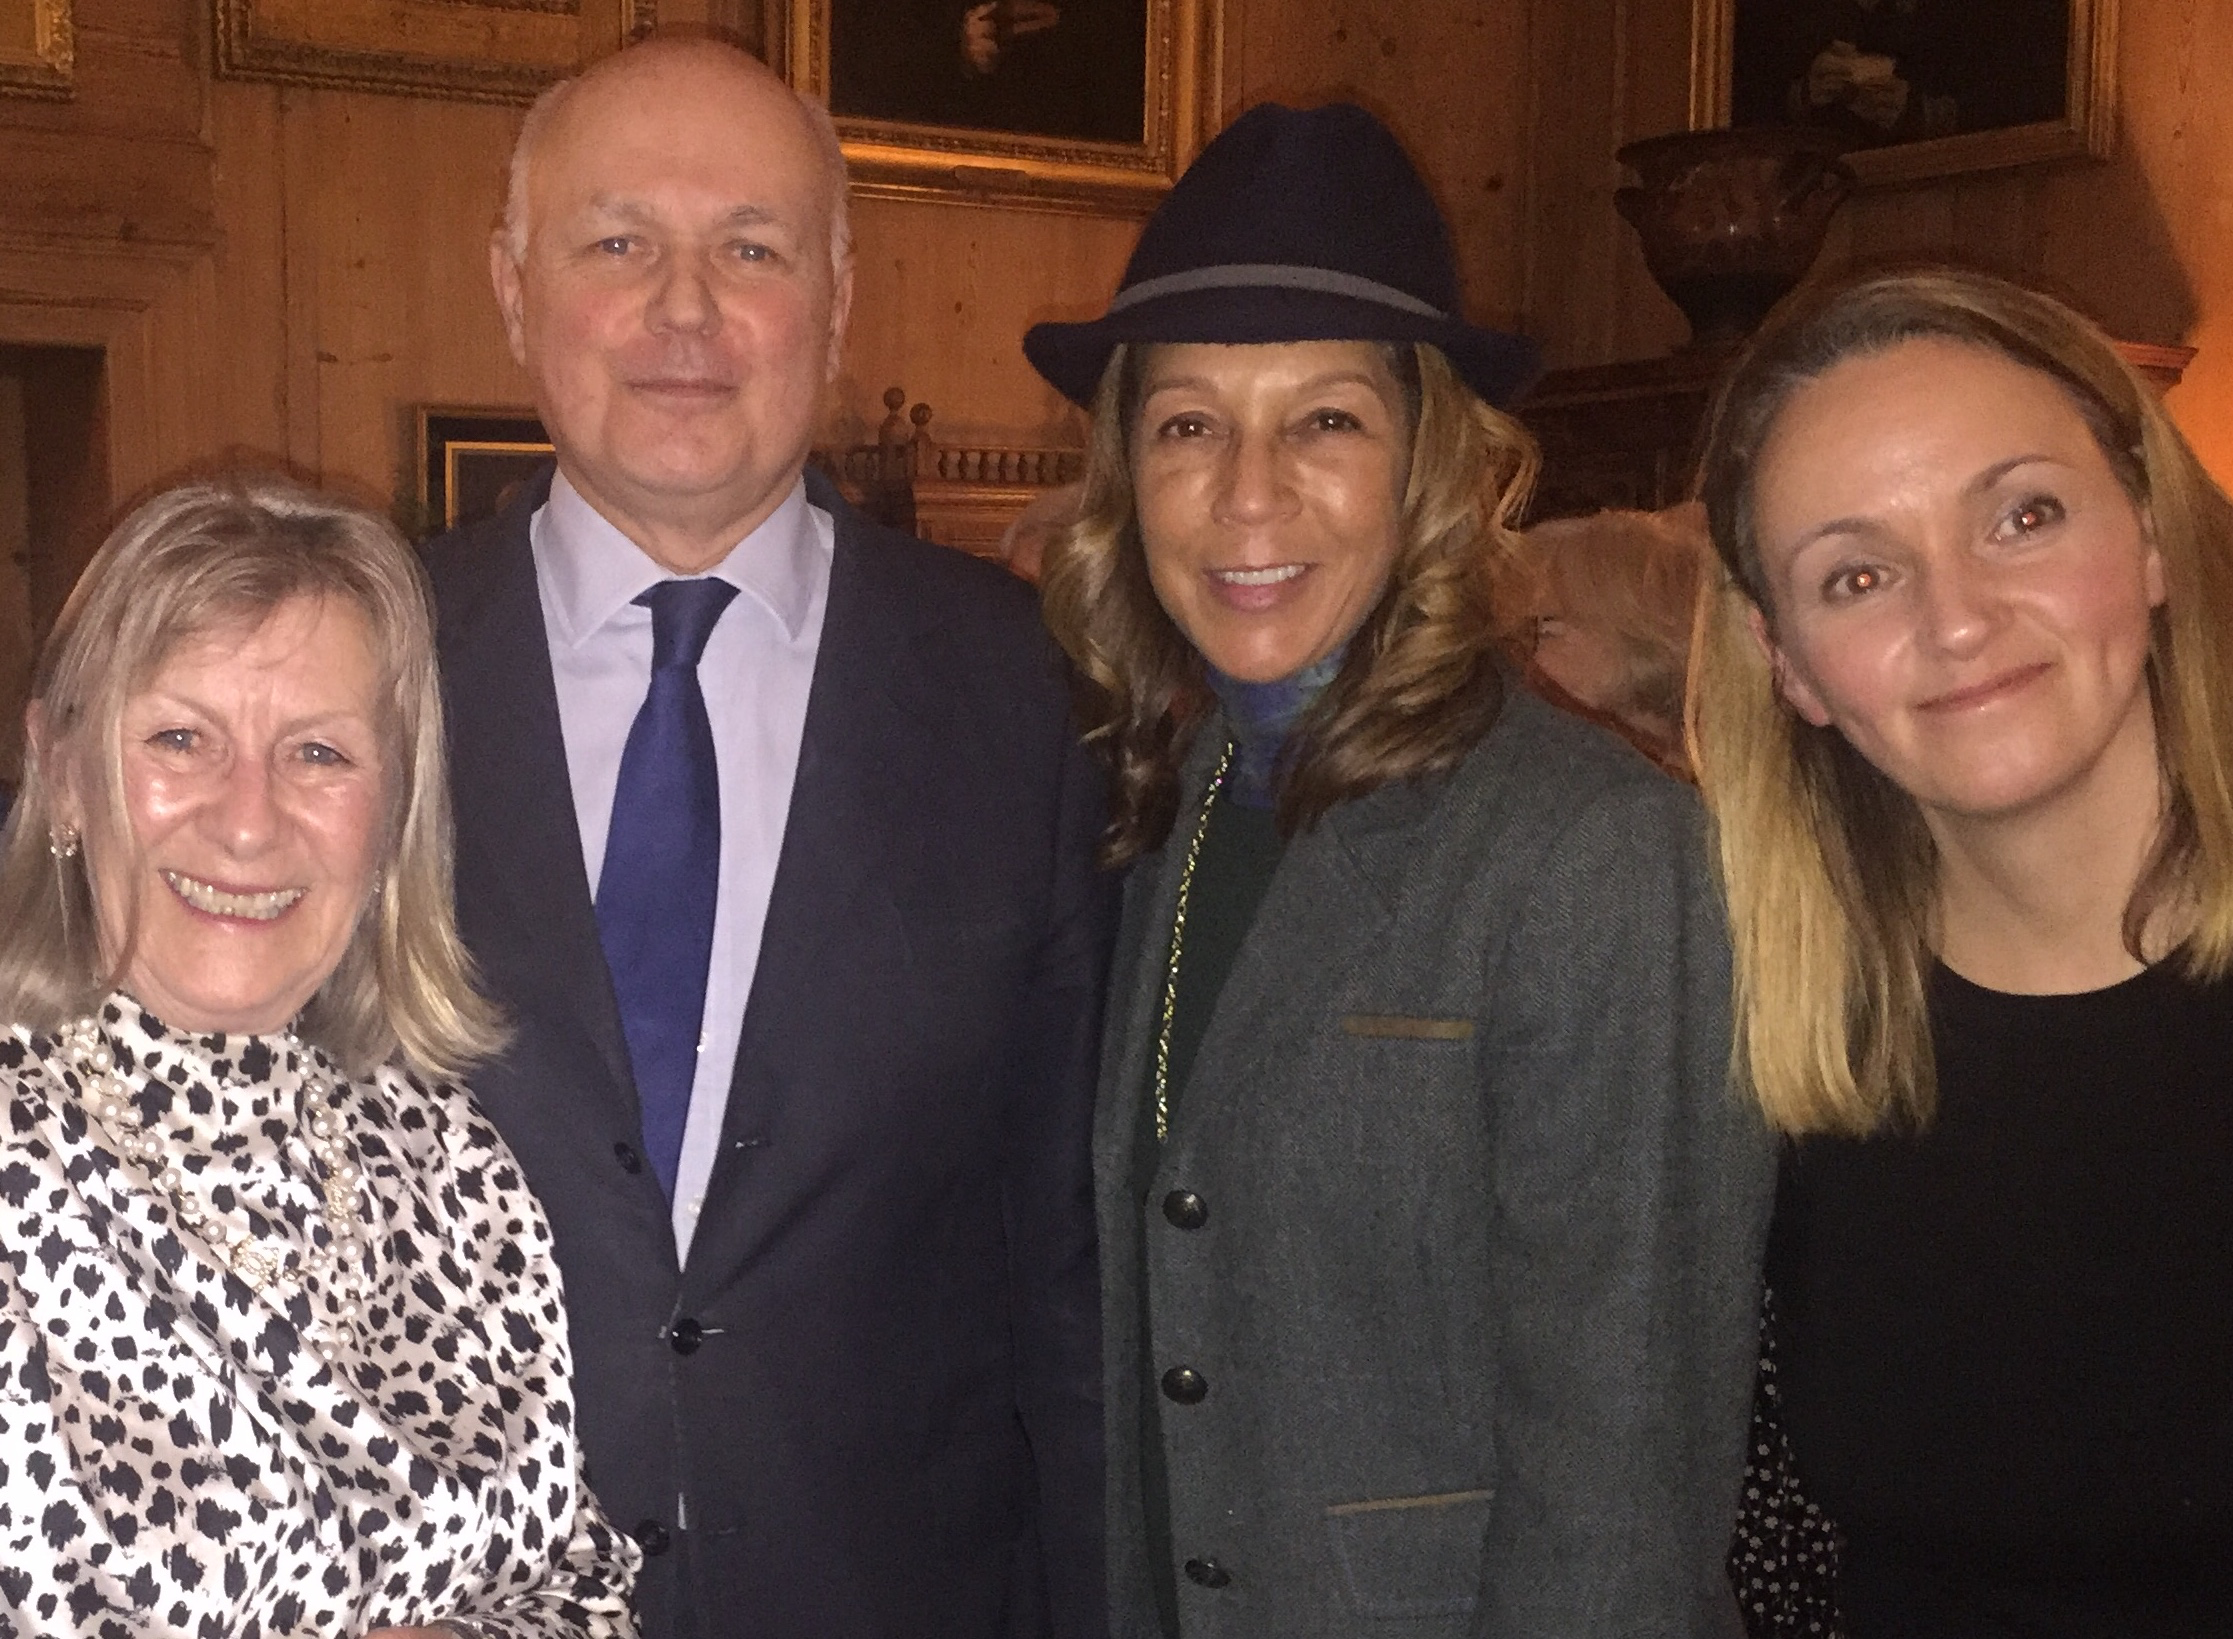 Sir Iain with Helen Grant MP, Andrea Thorpe (MWCA Chairman) and Louise Brice (DC Fundraising and Membership)